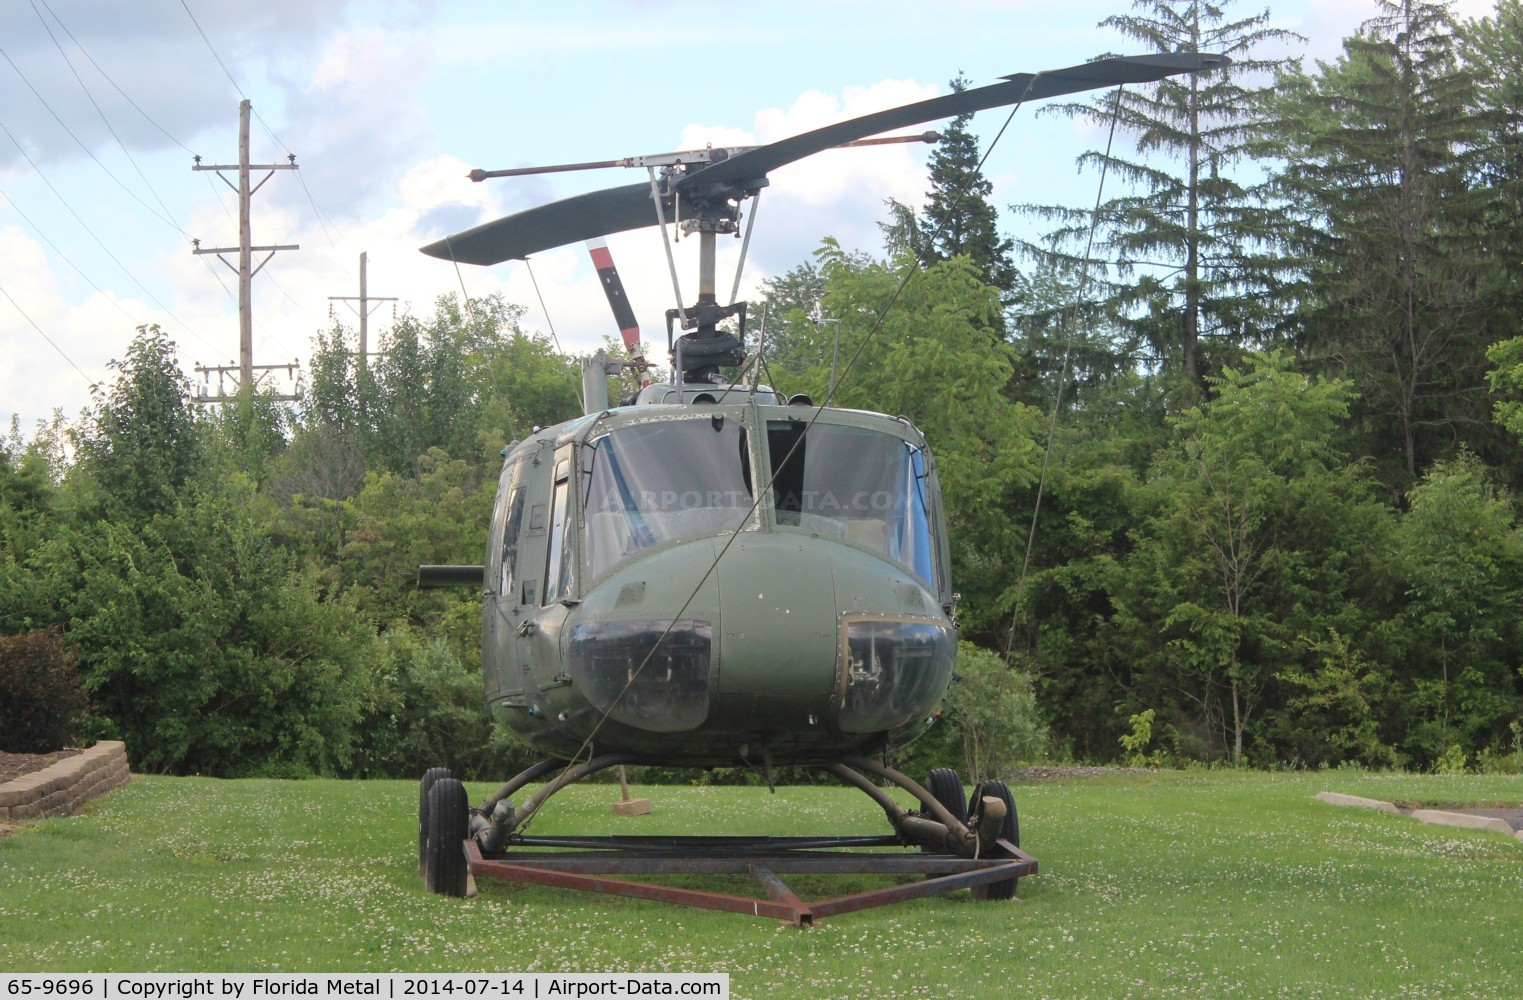 65-9696, 1965 Bell UH-1H Iroquois C/N 4640, UH-1H in Vandalia VFW Hall